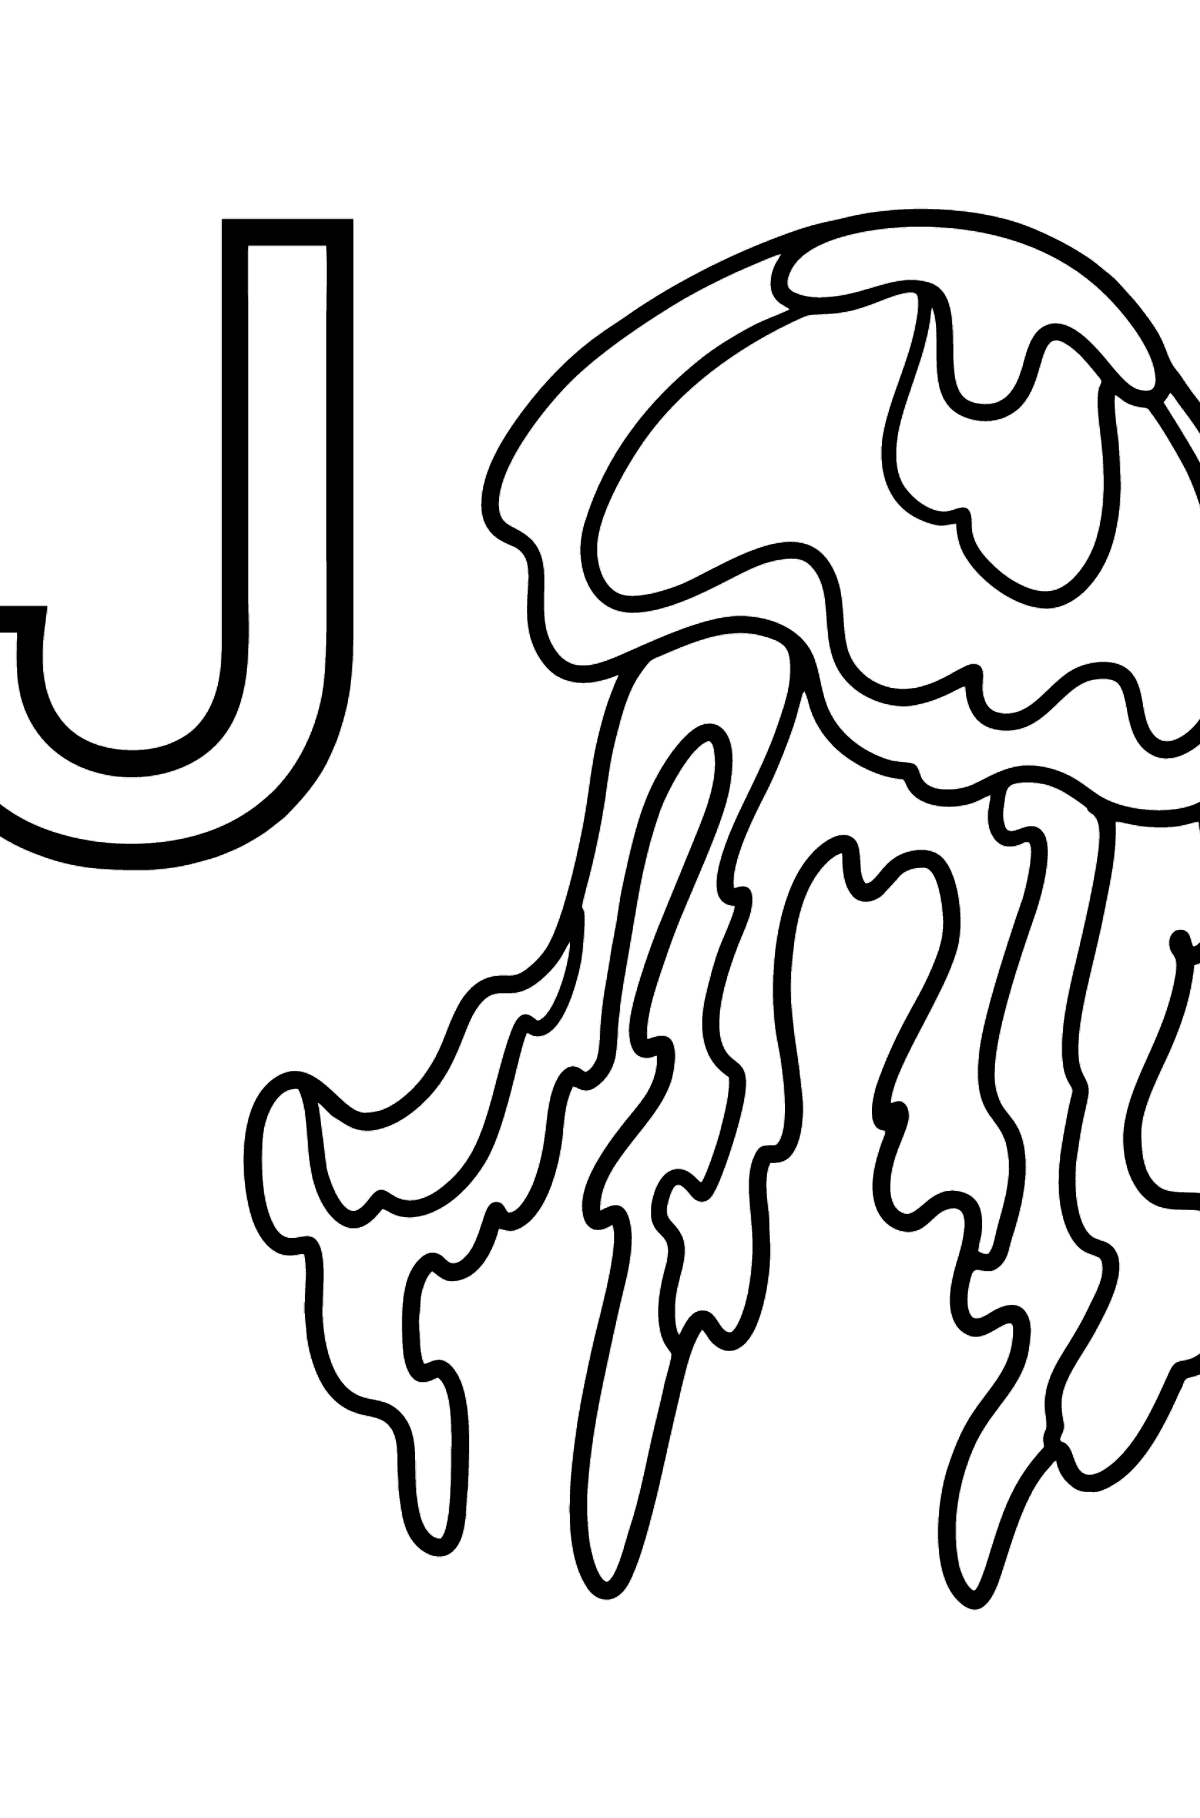 English Letter J coloring pages - JELLYFISH - Coloring Pages for Kids